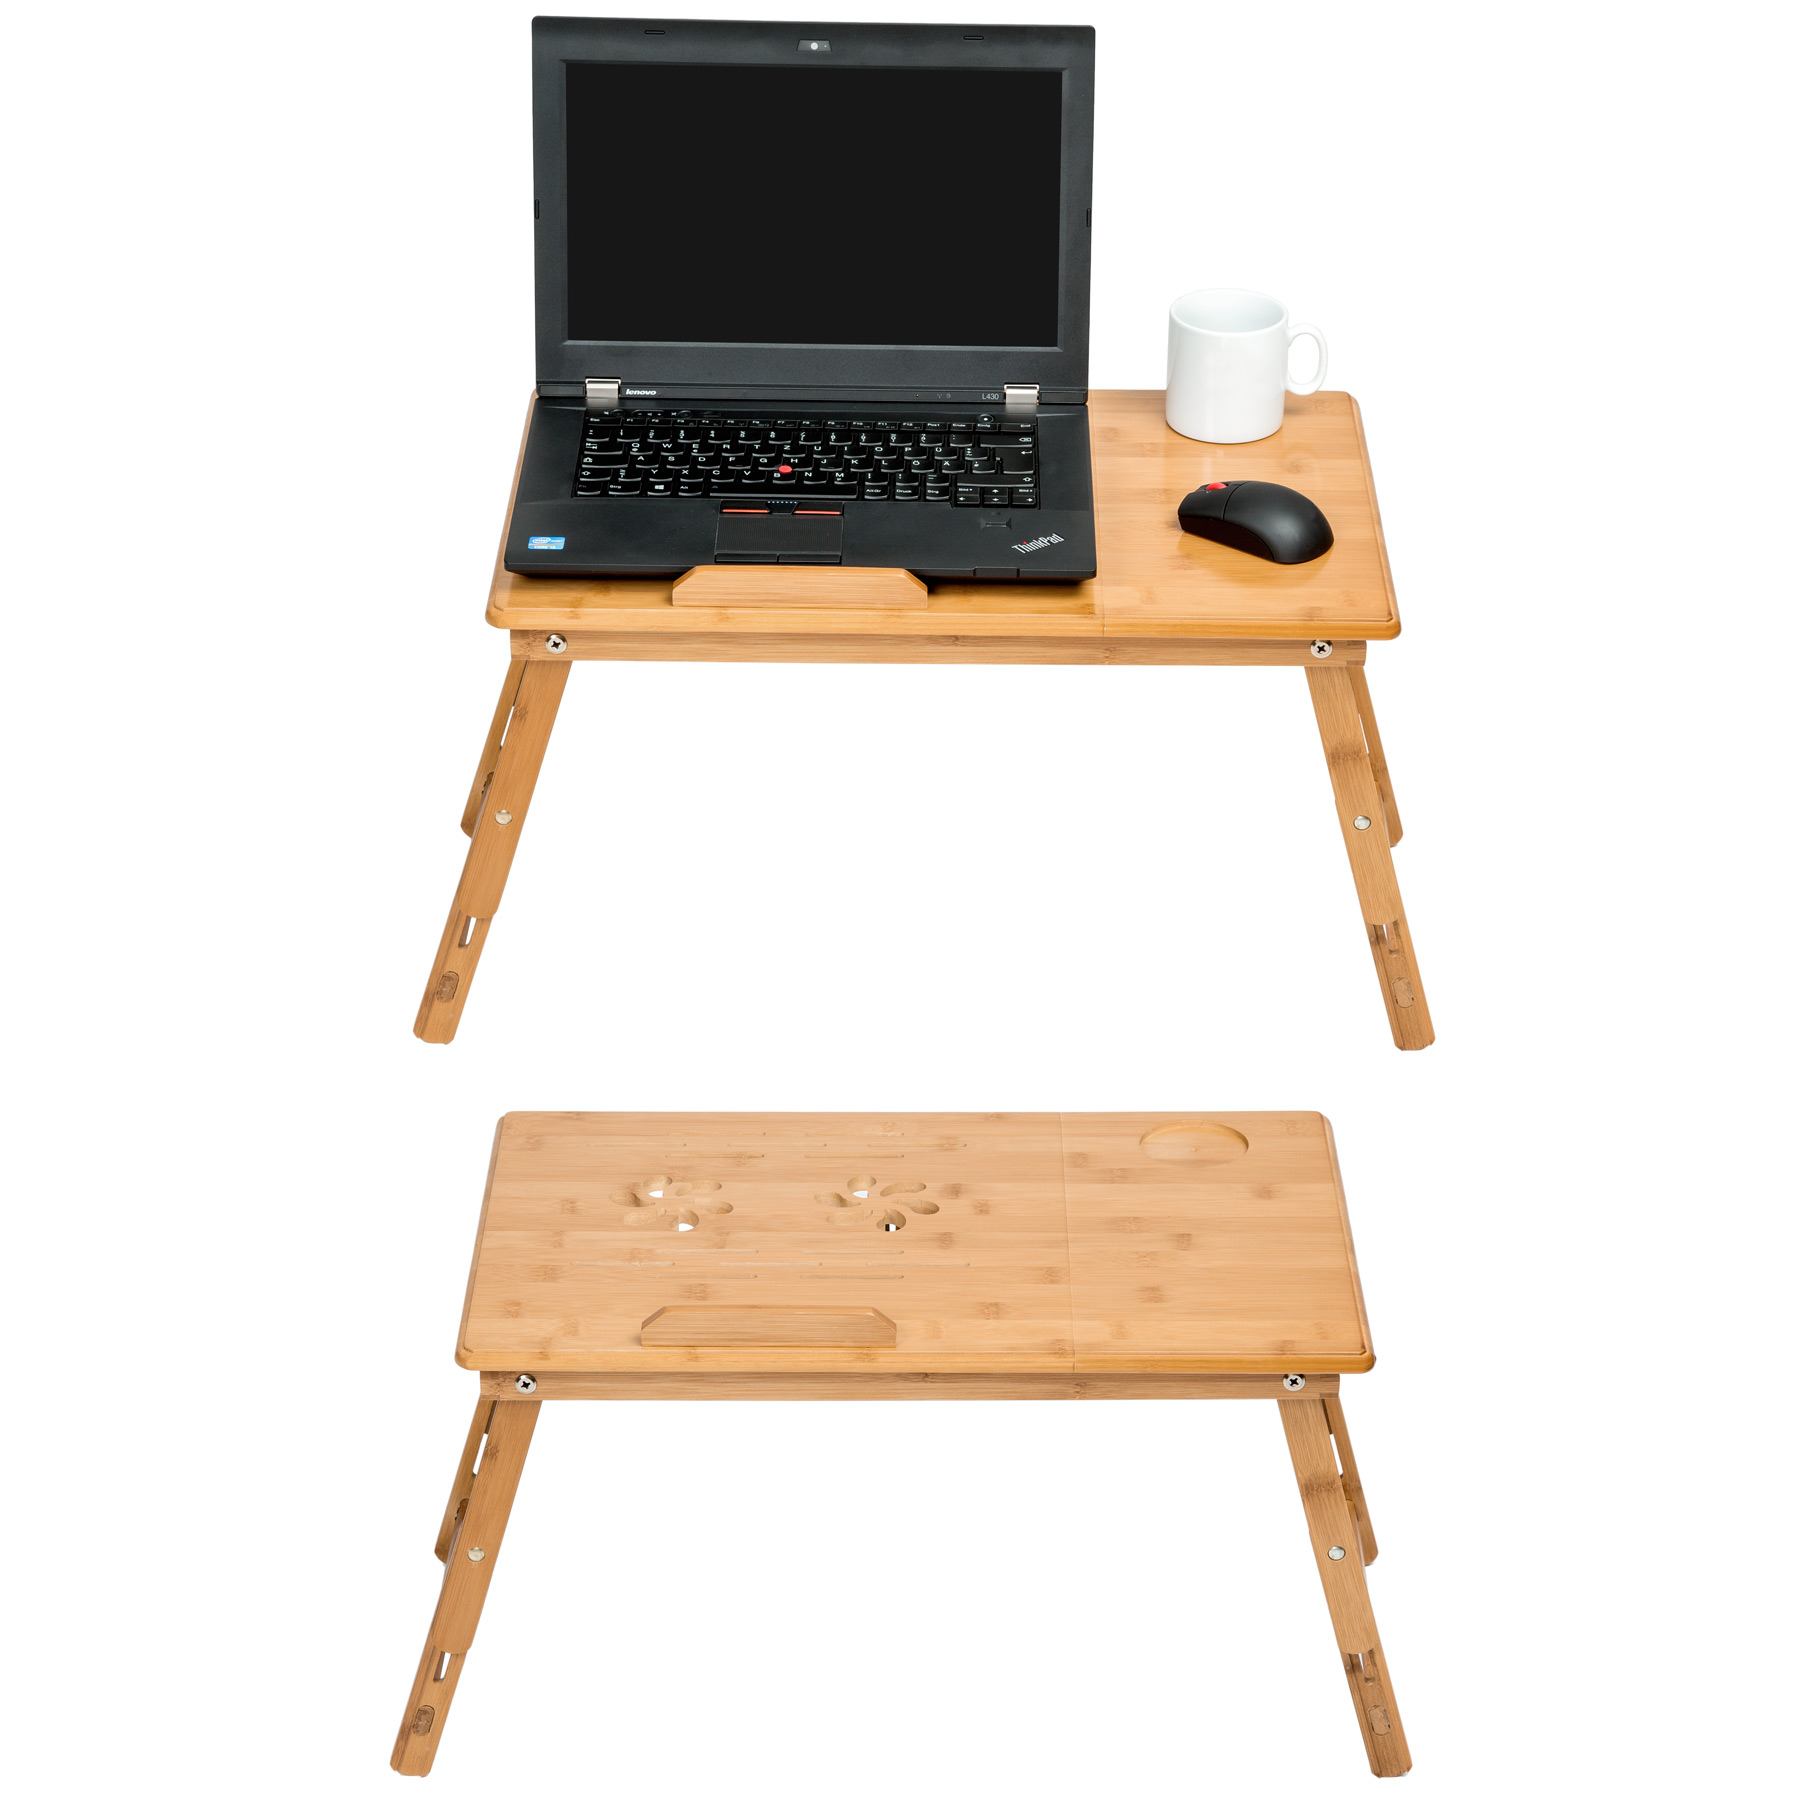 Table de lit pliable pour pc portable notebook ipad tablet - Table de lit pour ordinateur portable ...